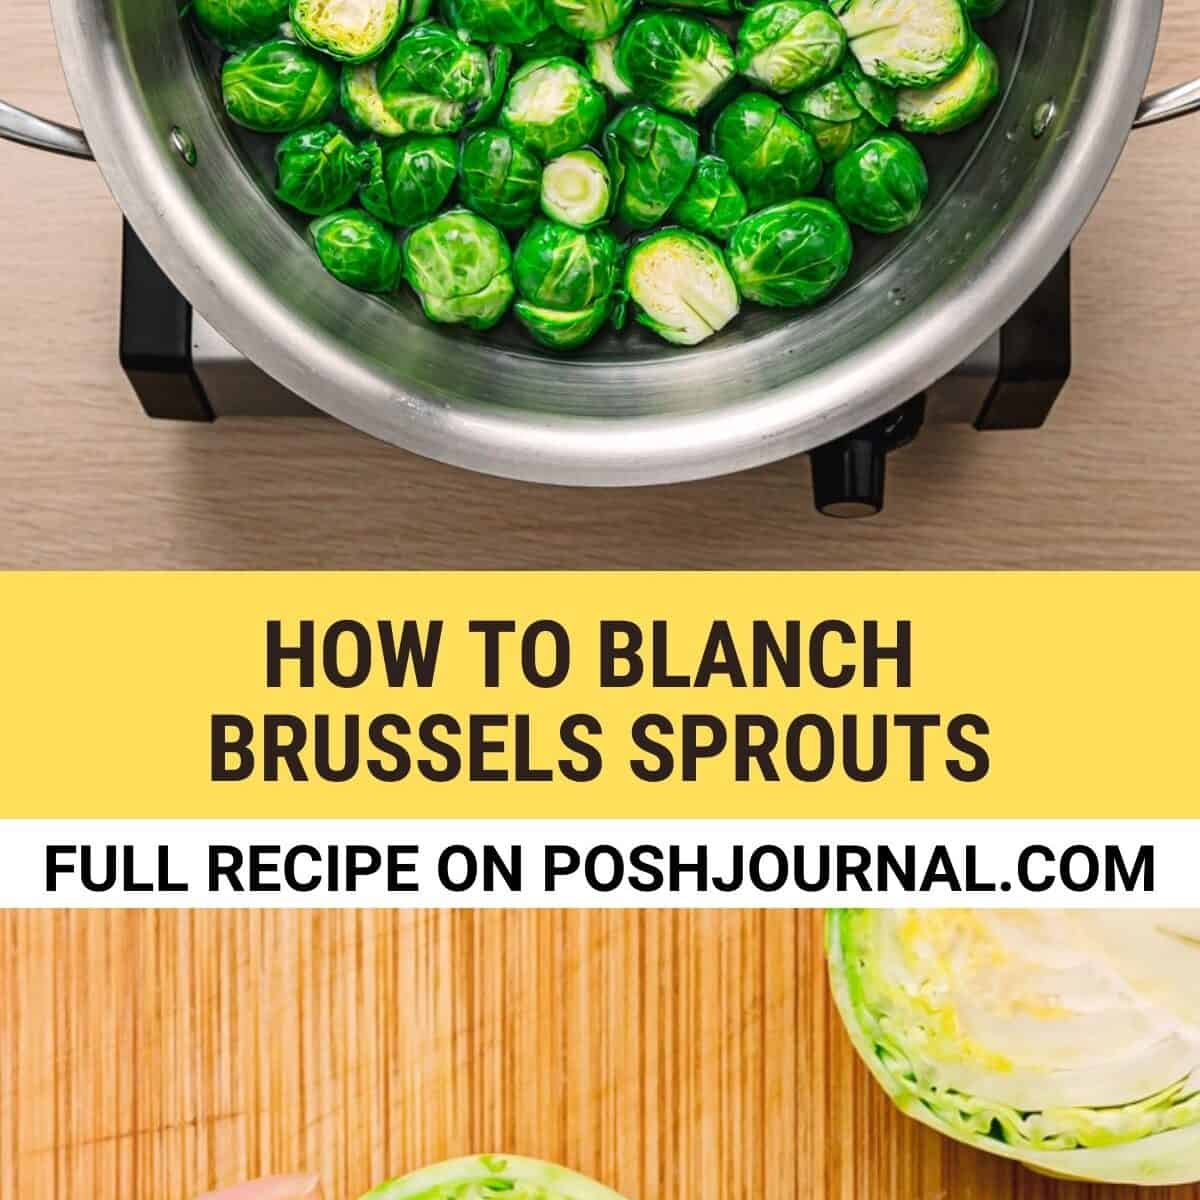 How to Blanch Brussels Sprouts